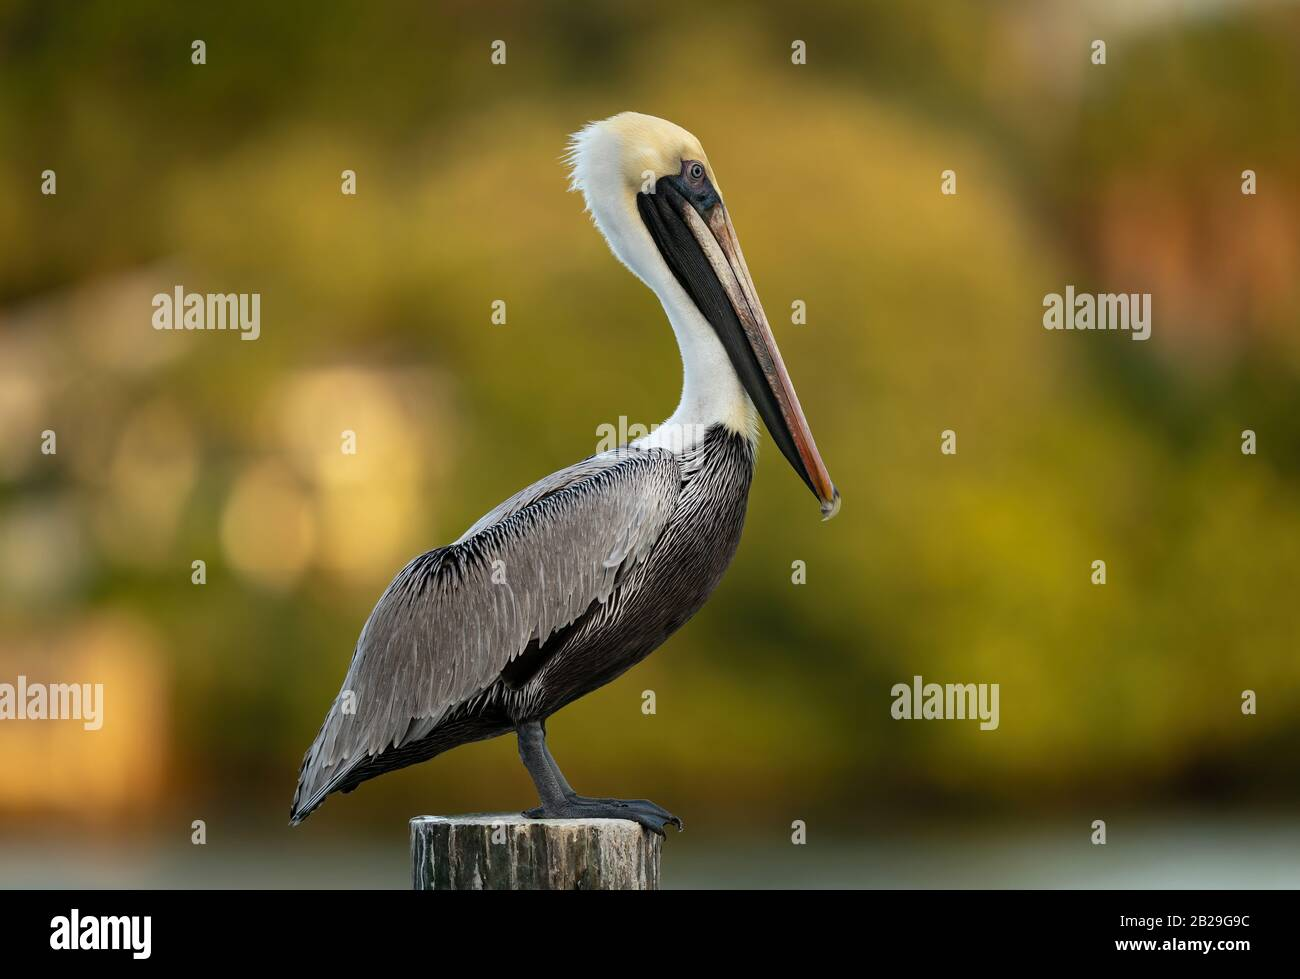 Grey Pelican in Florida Stock Photo